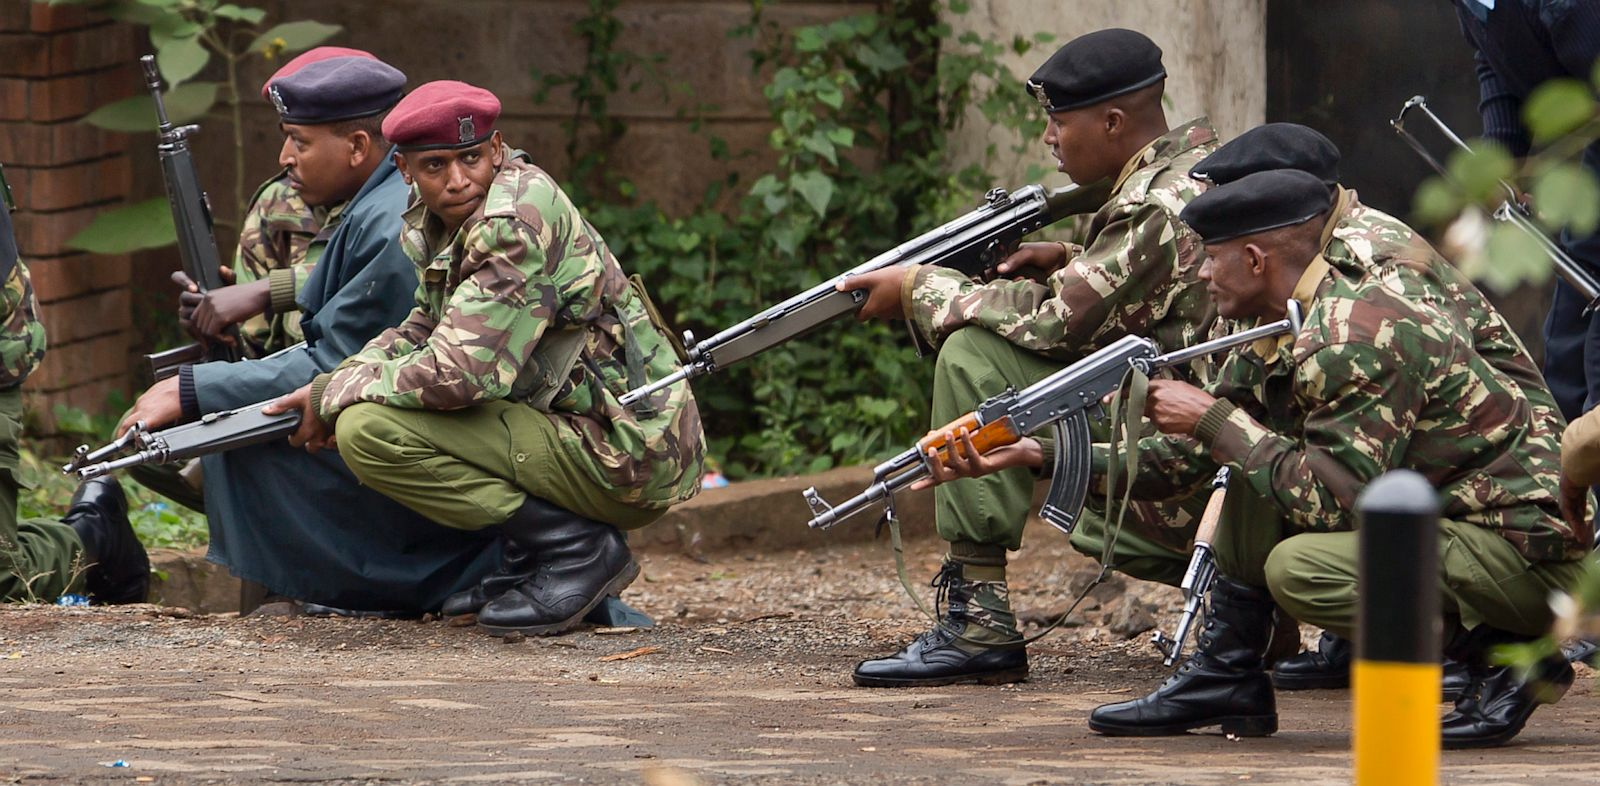 PHOTO: Armed police from the General Service Unit take cover behind a wall during a bout of gunfire, outside the Westgate Mall in Nairobi, Kenya Monday, Sept. 23, 2013.